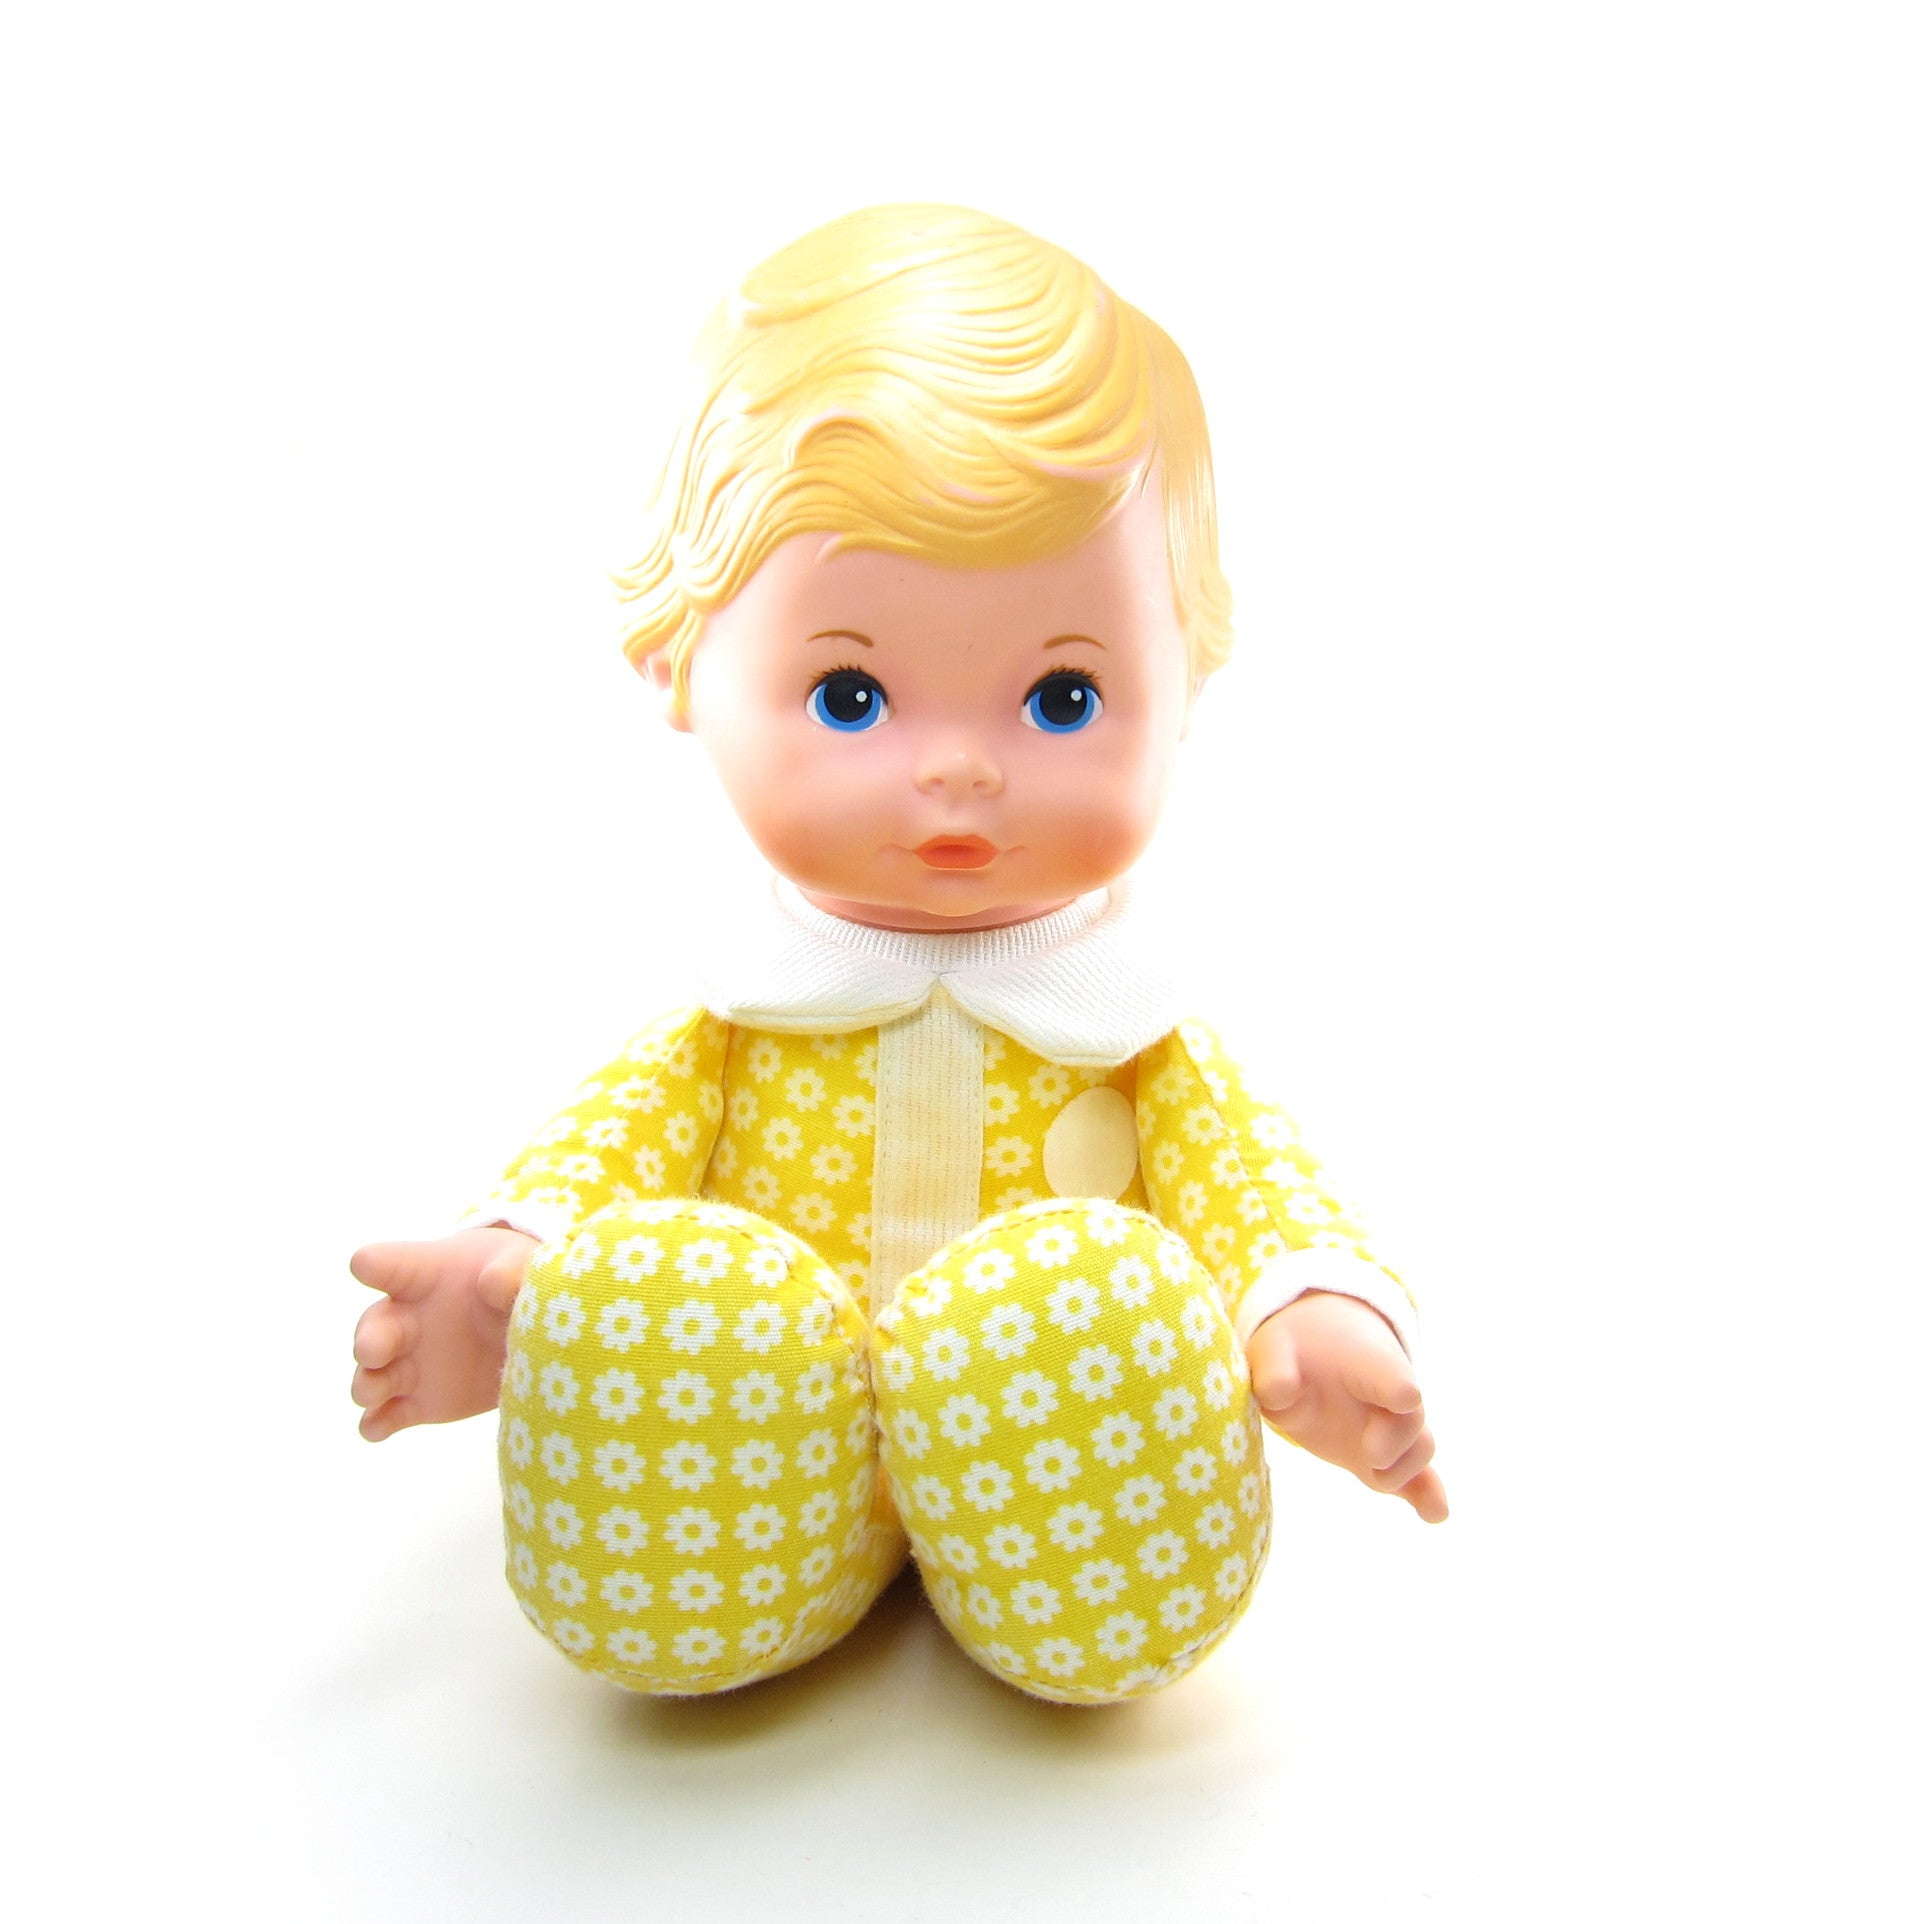 Honey Fisher-Price lap sitter 1975 cloth doll